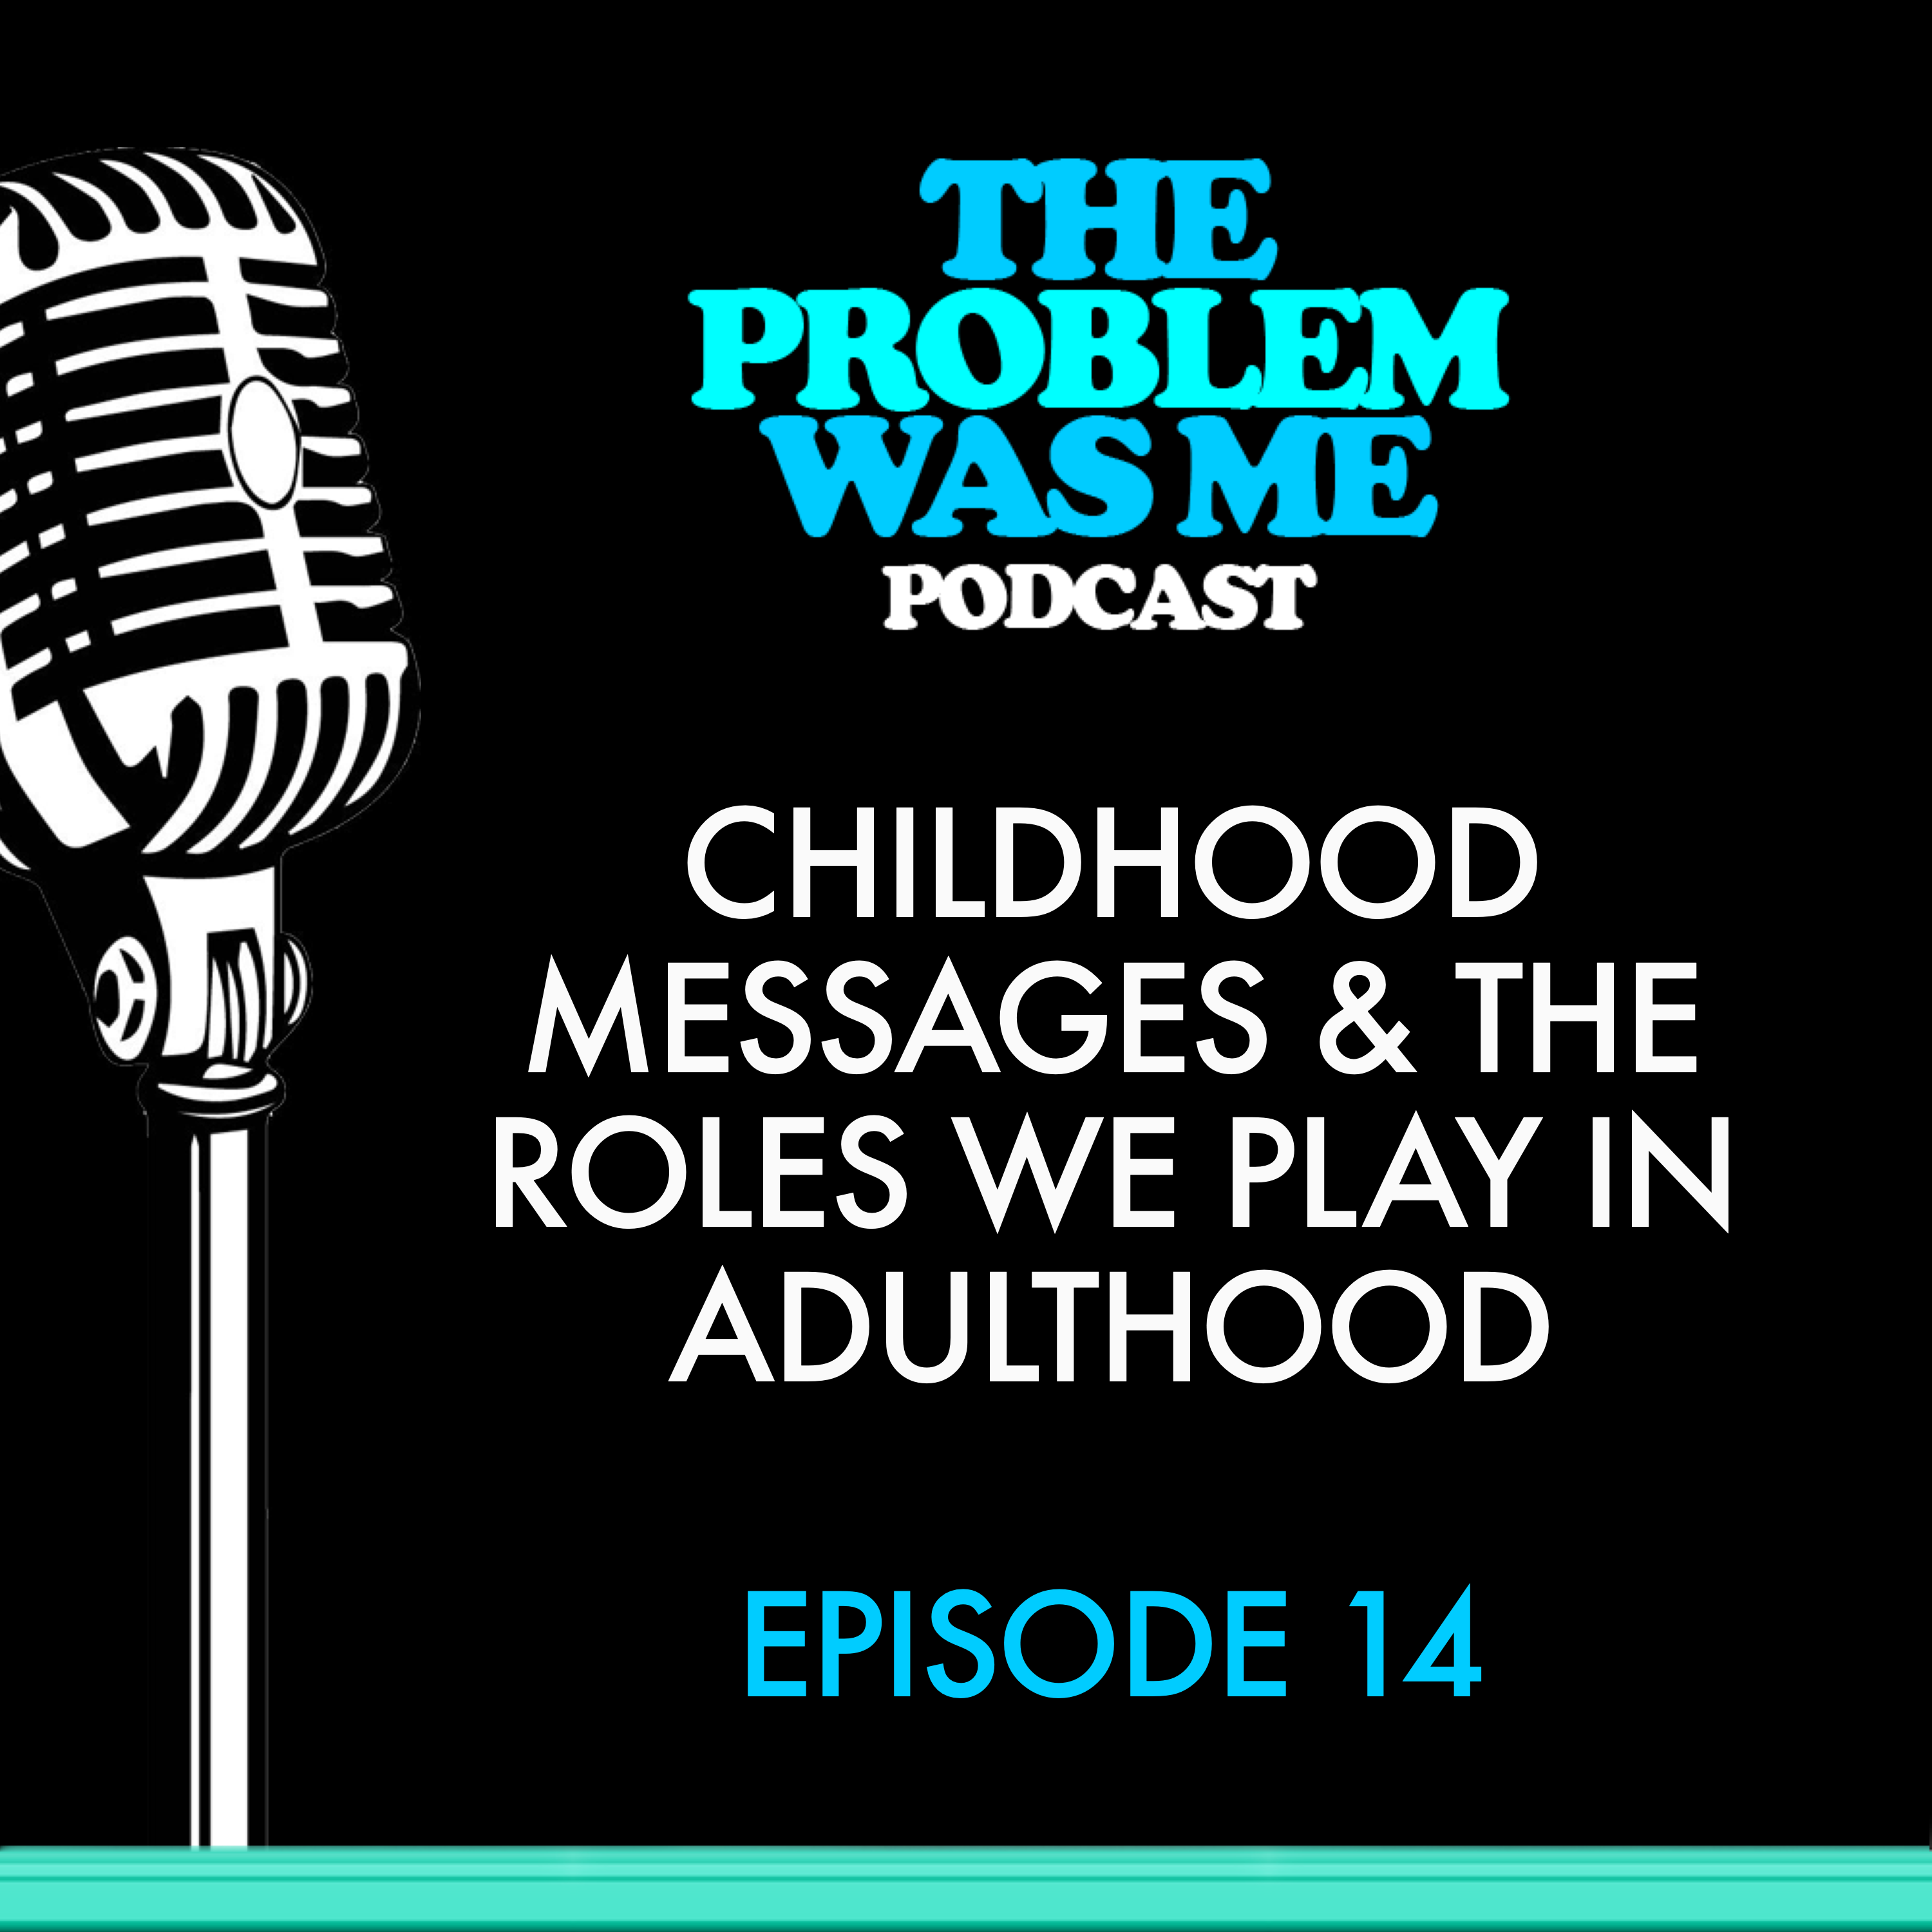 Childhood Messages & The Roles We Play In Adulthood